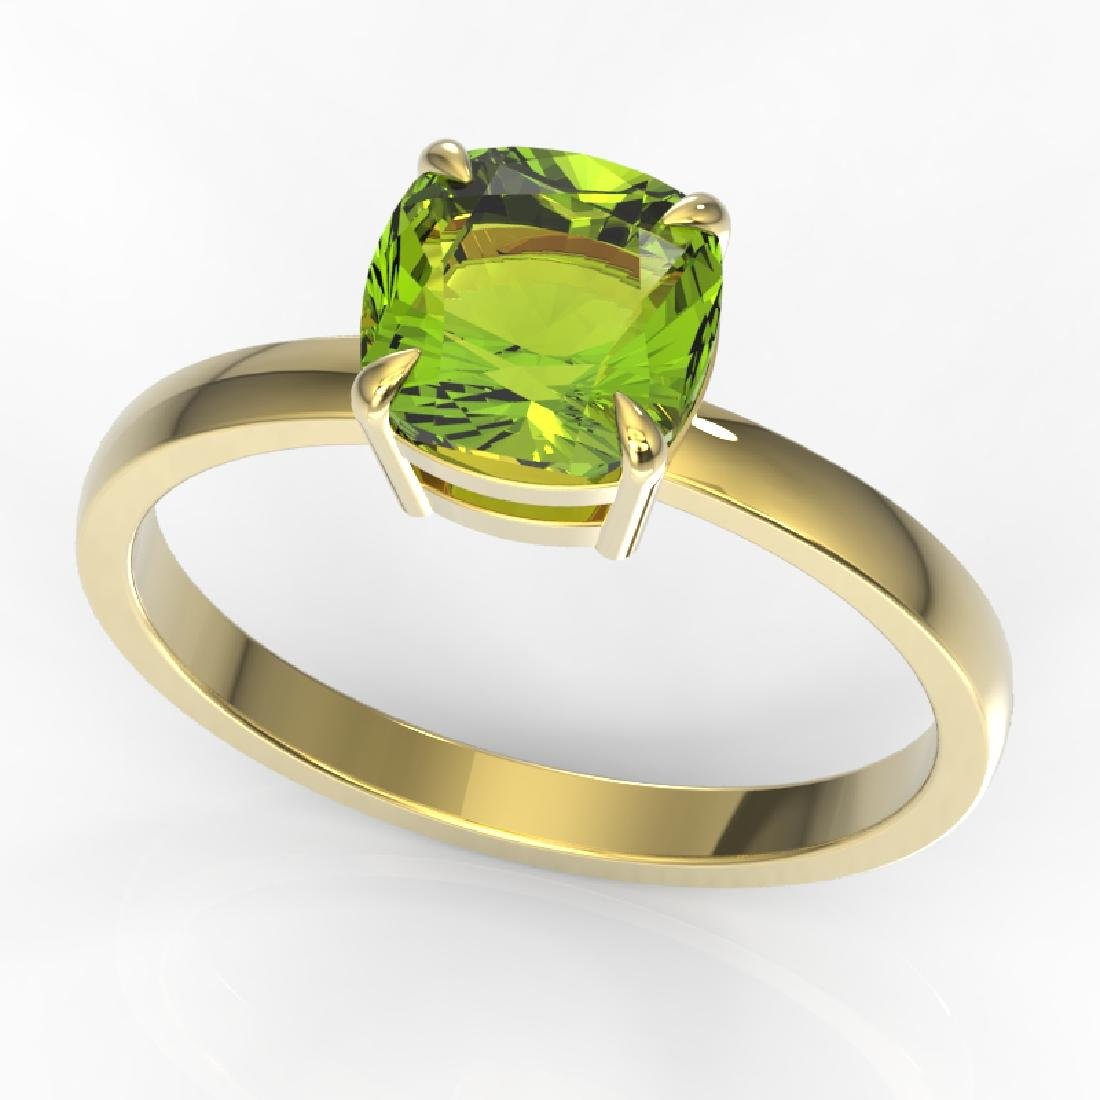 2 CTW Cushion Cut Peridot Solitaire Engagement Ring 18K - 2